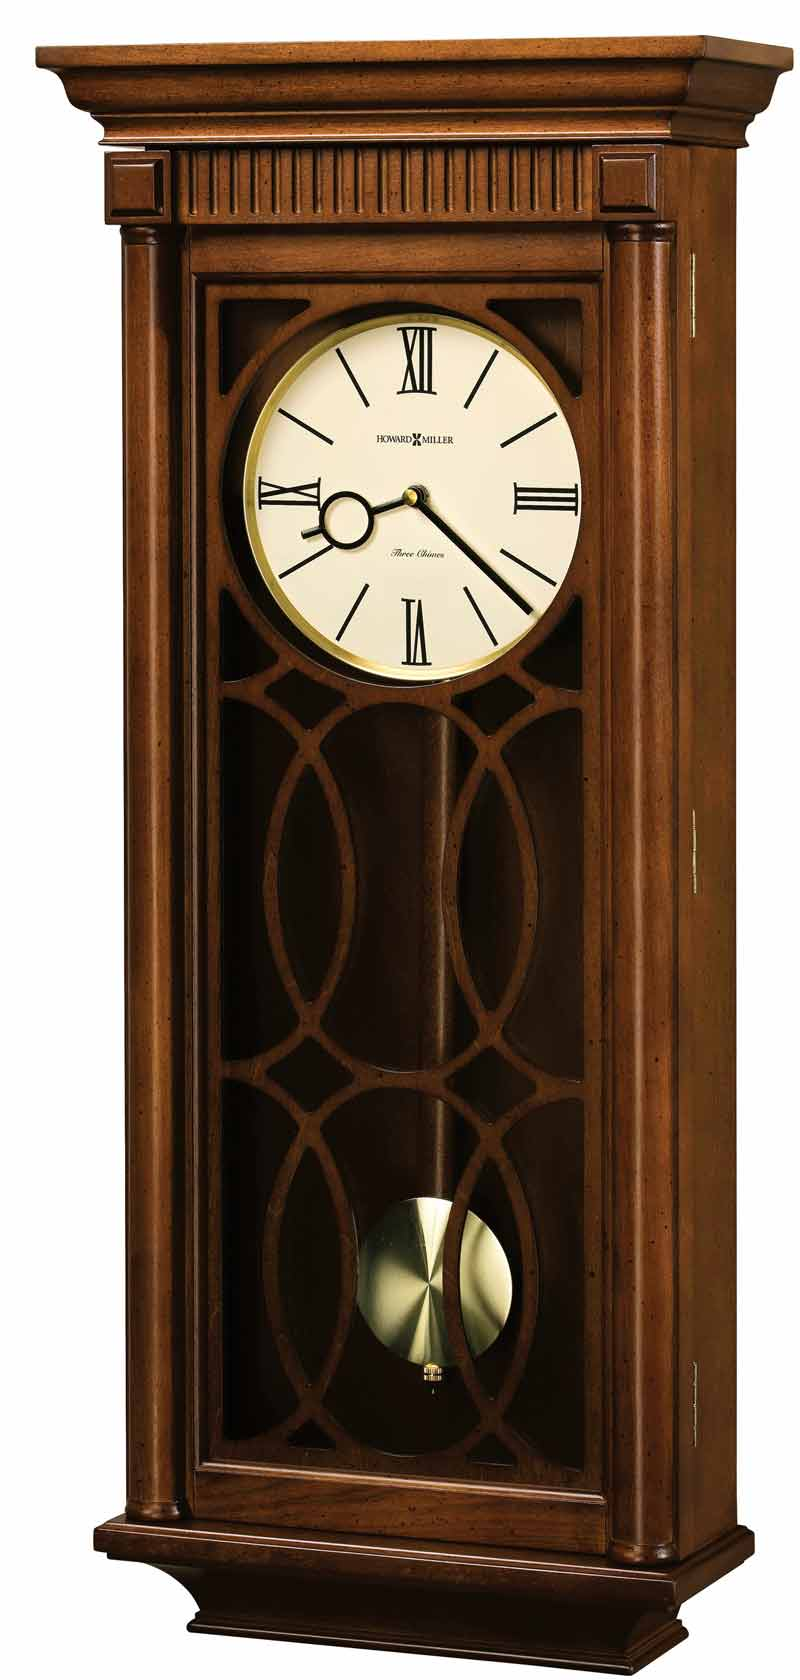 Quartz wooden chiming wall clocks the clock depot howard miller kathryn 625 525 chiming wall clock amipublicfo Choice Image